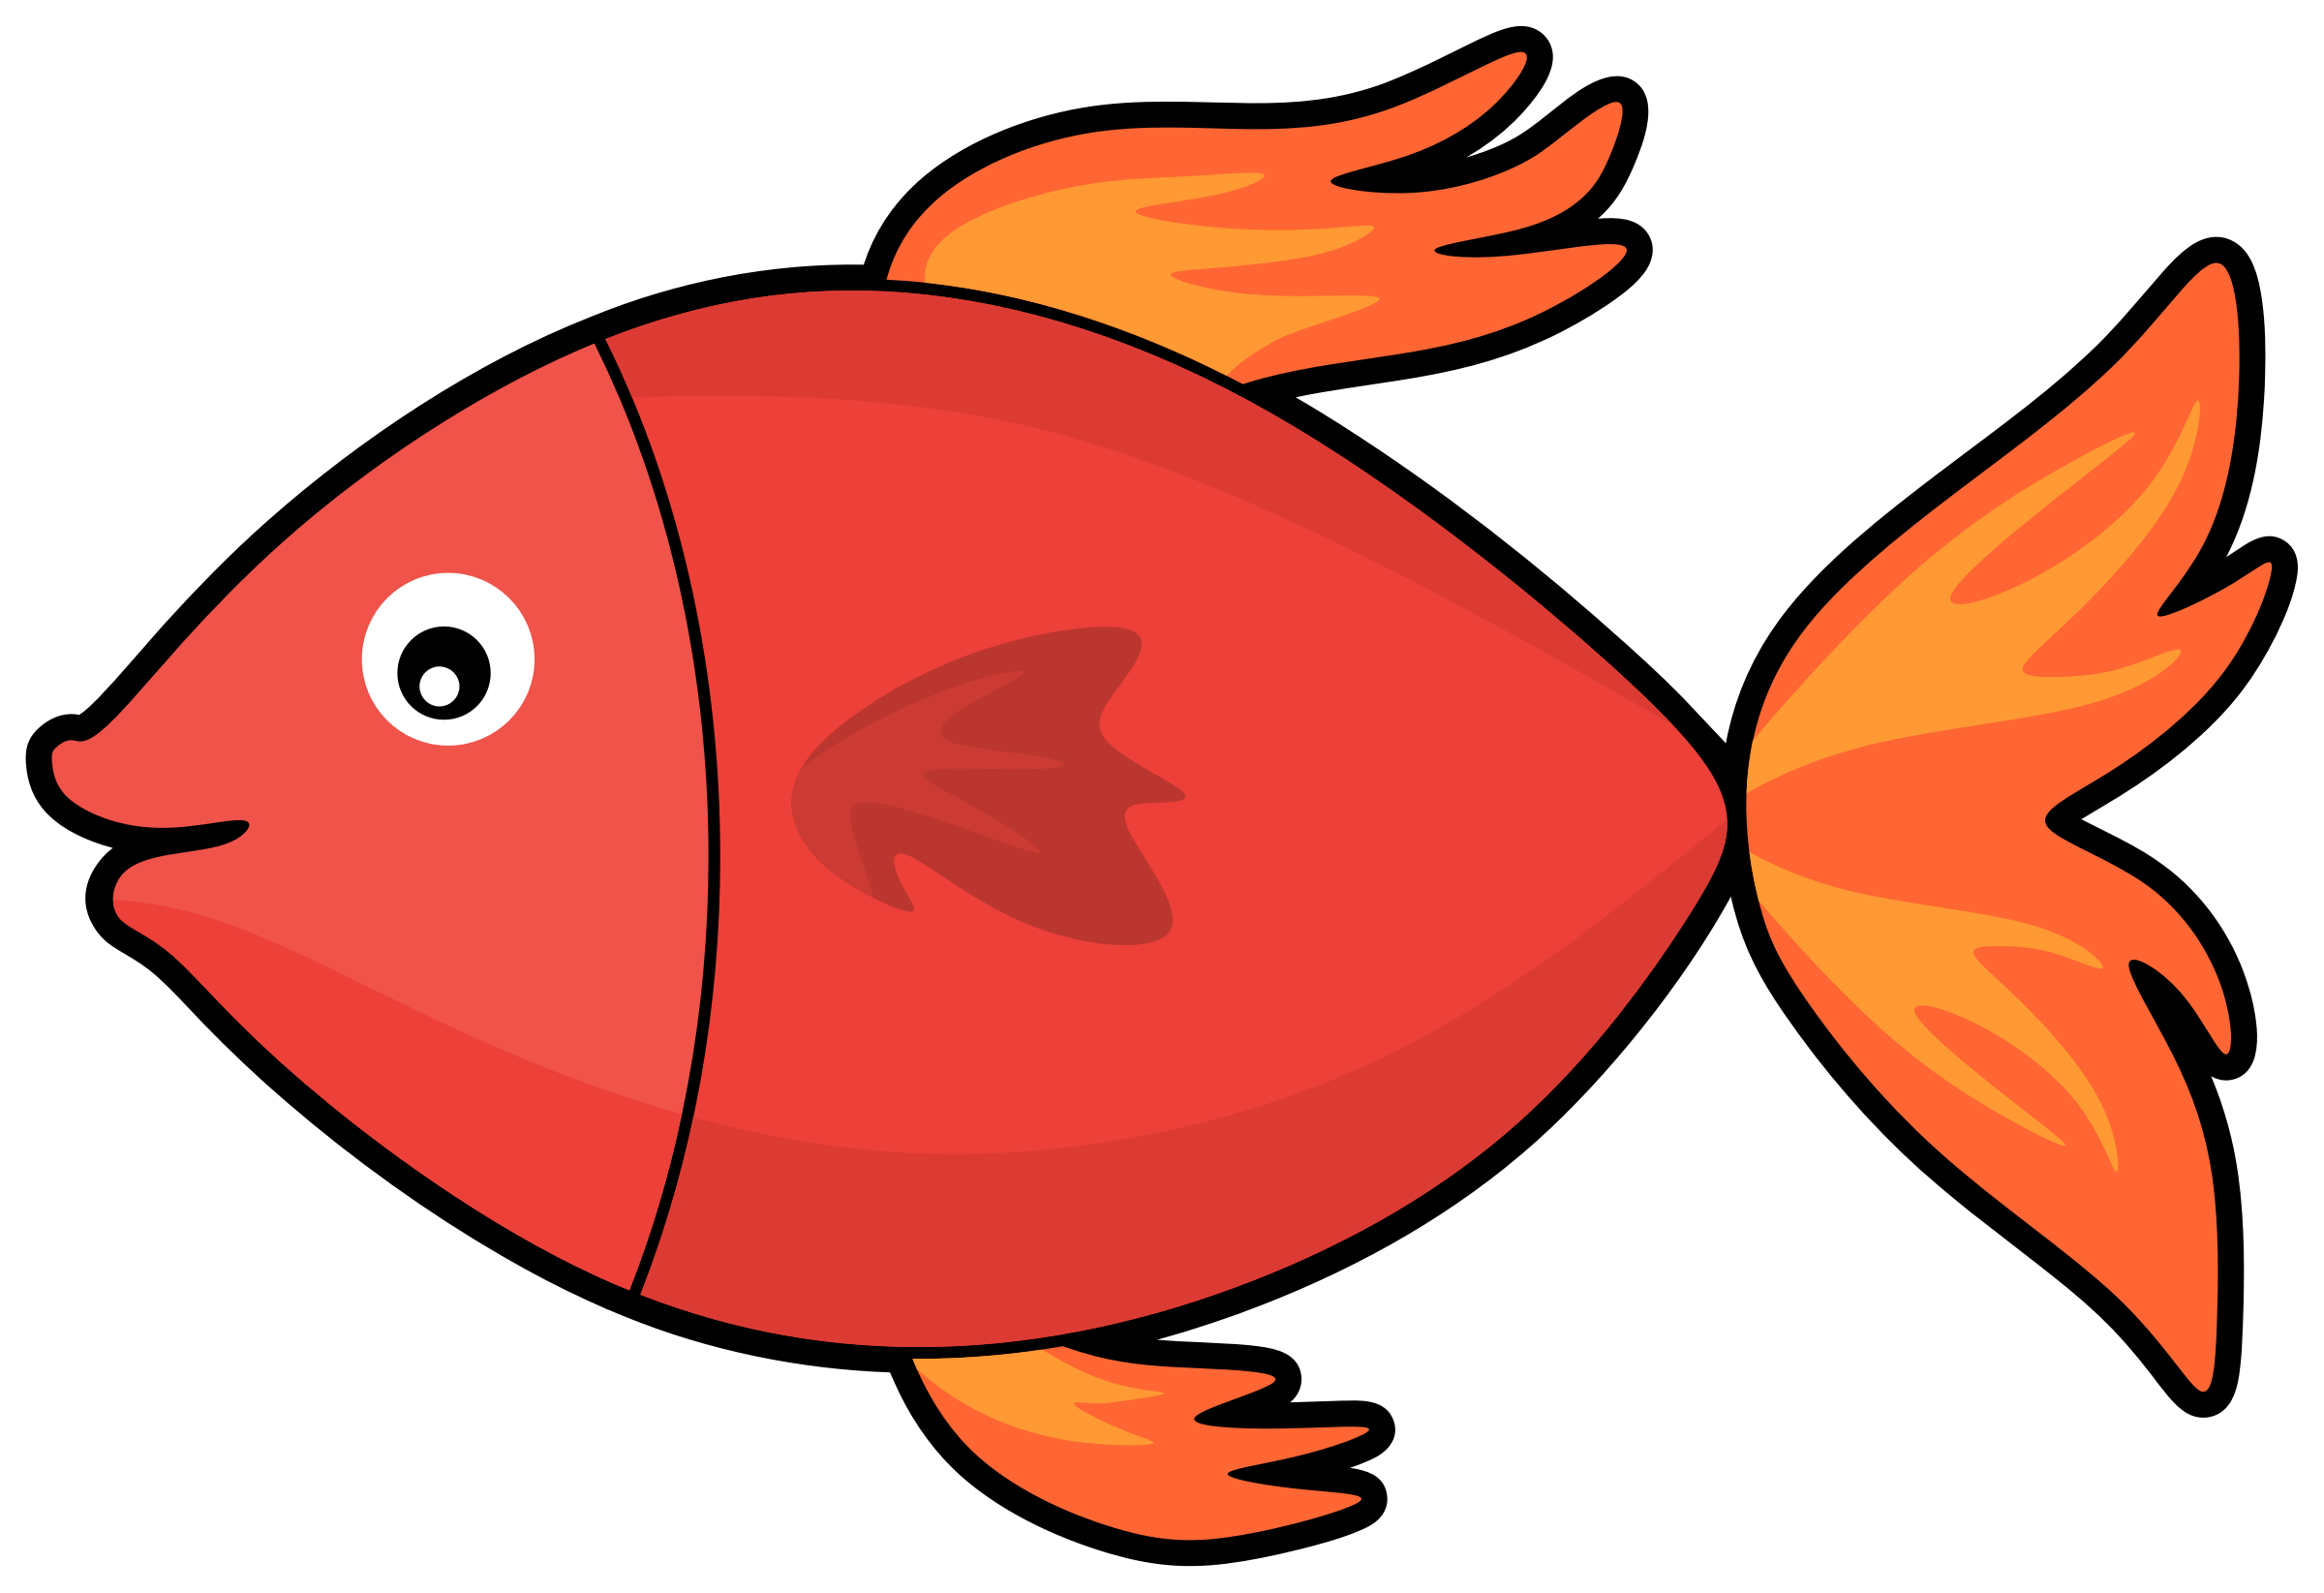 A fish in clipart png royalty free library Butterfly Fish Clipart at GetDrawings.com | Free for personal use ... png royalty free library